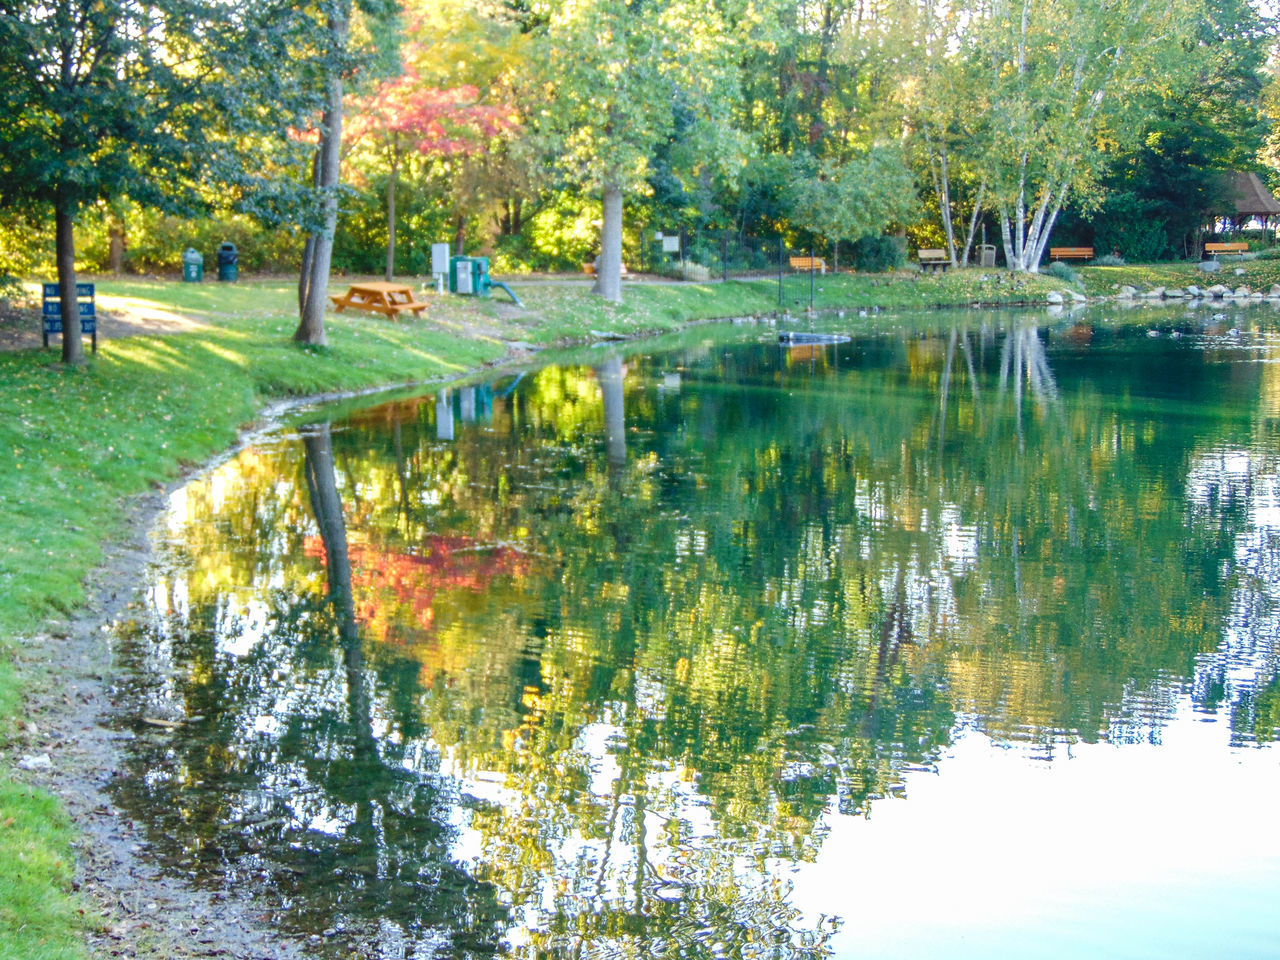 reflection, water, tree, nature, beauty in nature, autumn, tranquil scene, outdoors, tranquility, lake, scenics, grass, park - man made space, day, waterfront, leaf, no people